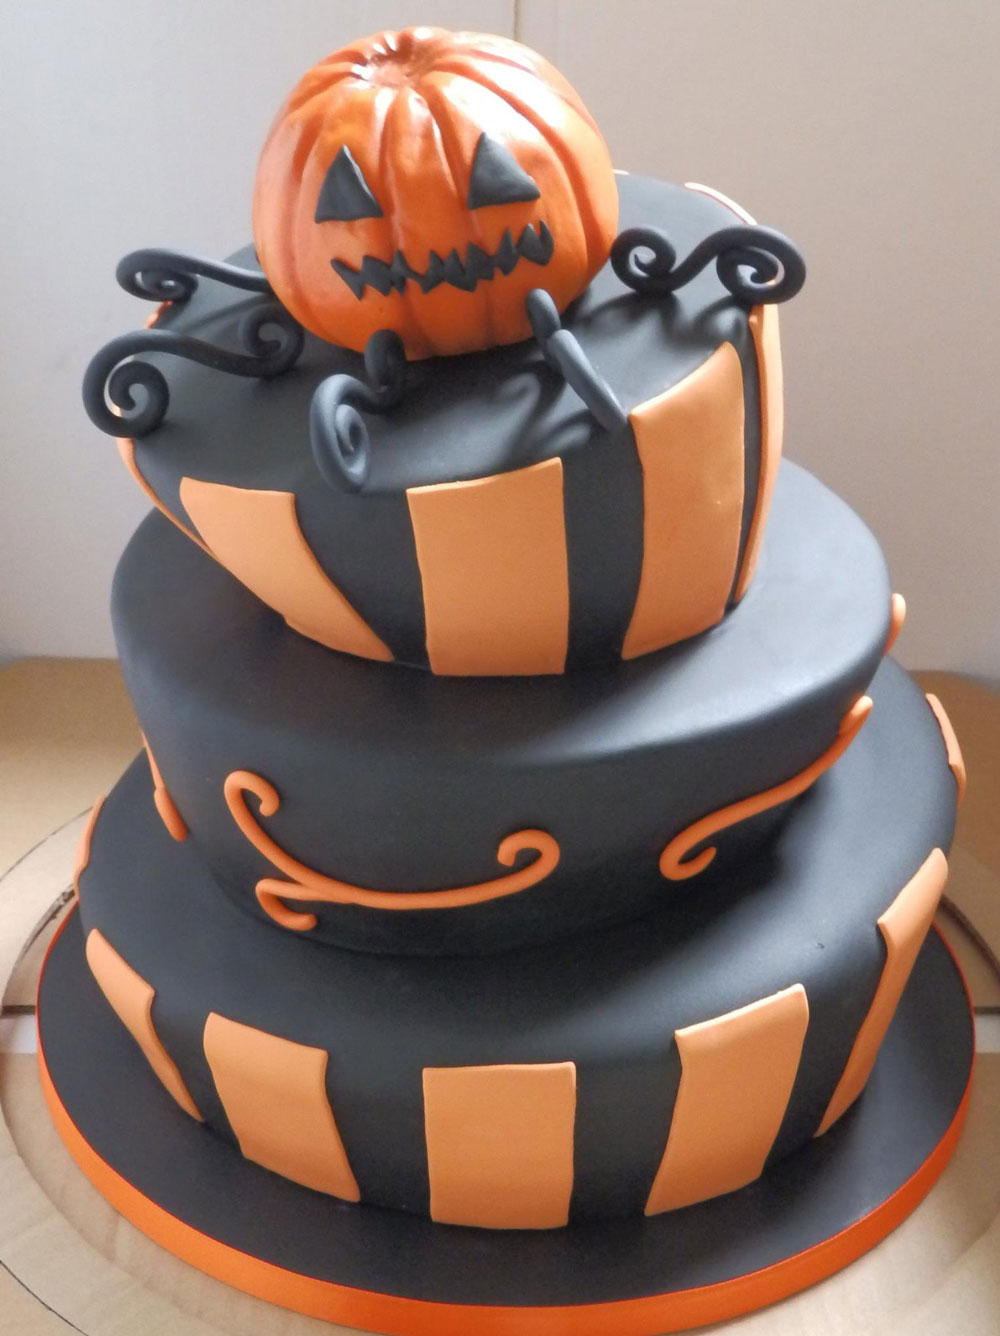 Celebrating Halloween Cake